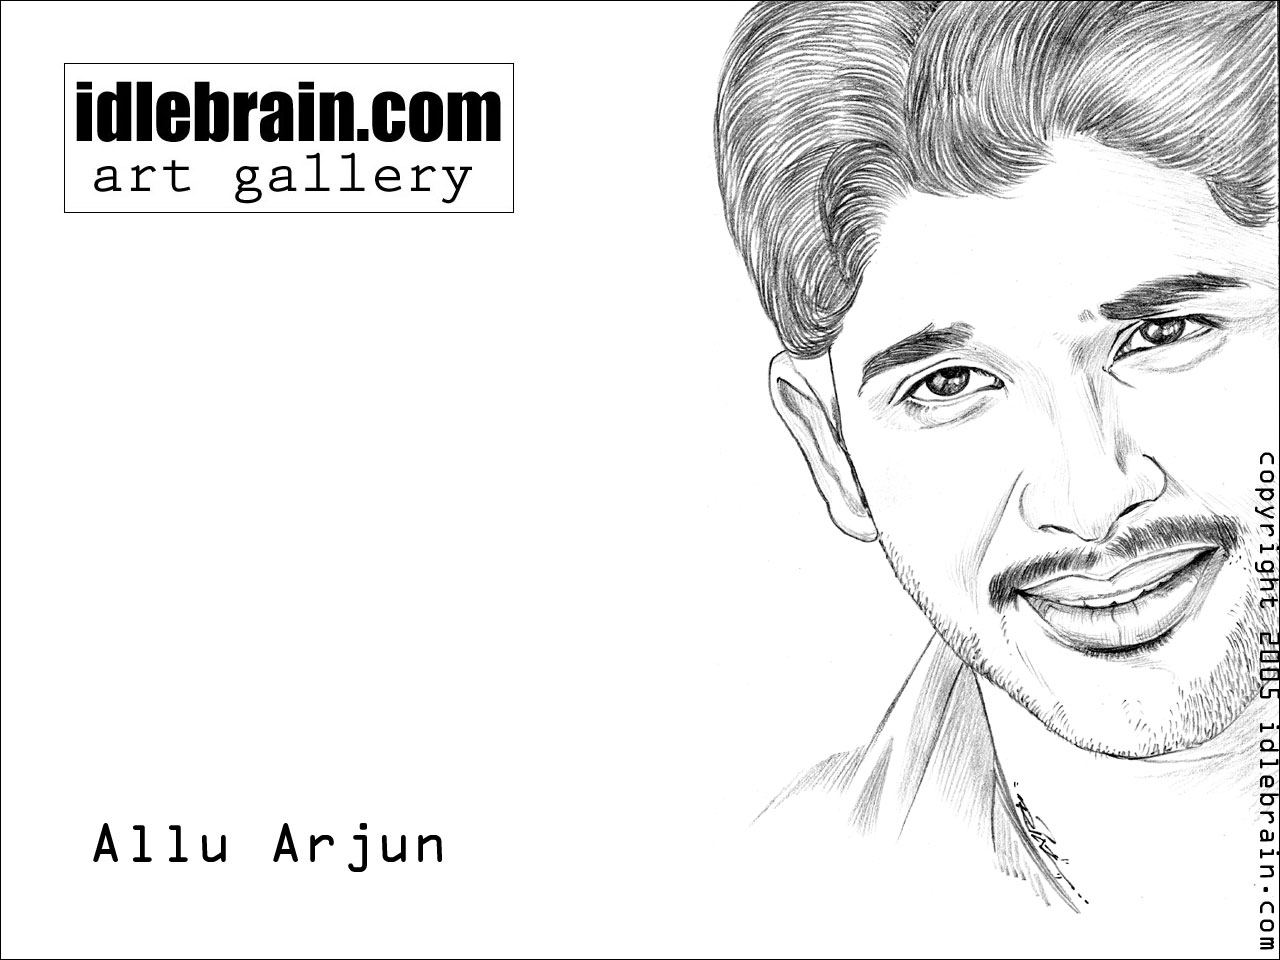 Allu Arjun - Telugu film wallpapers - portrait